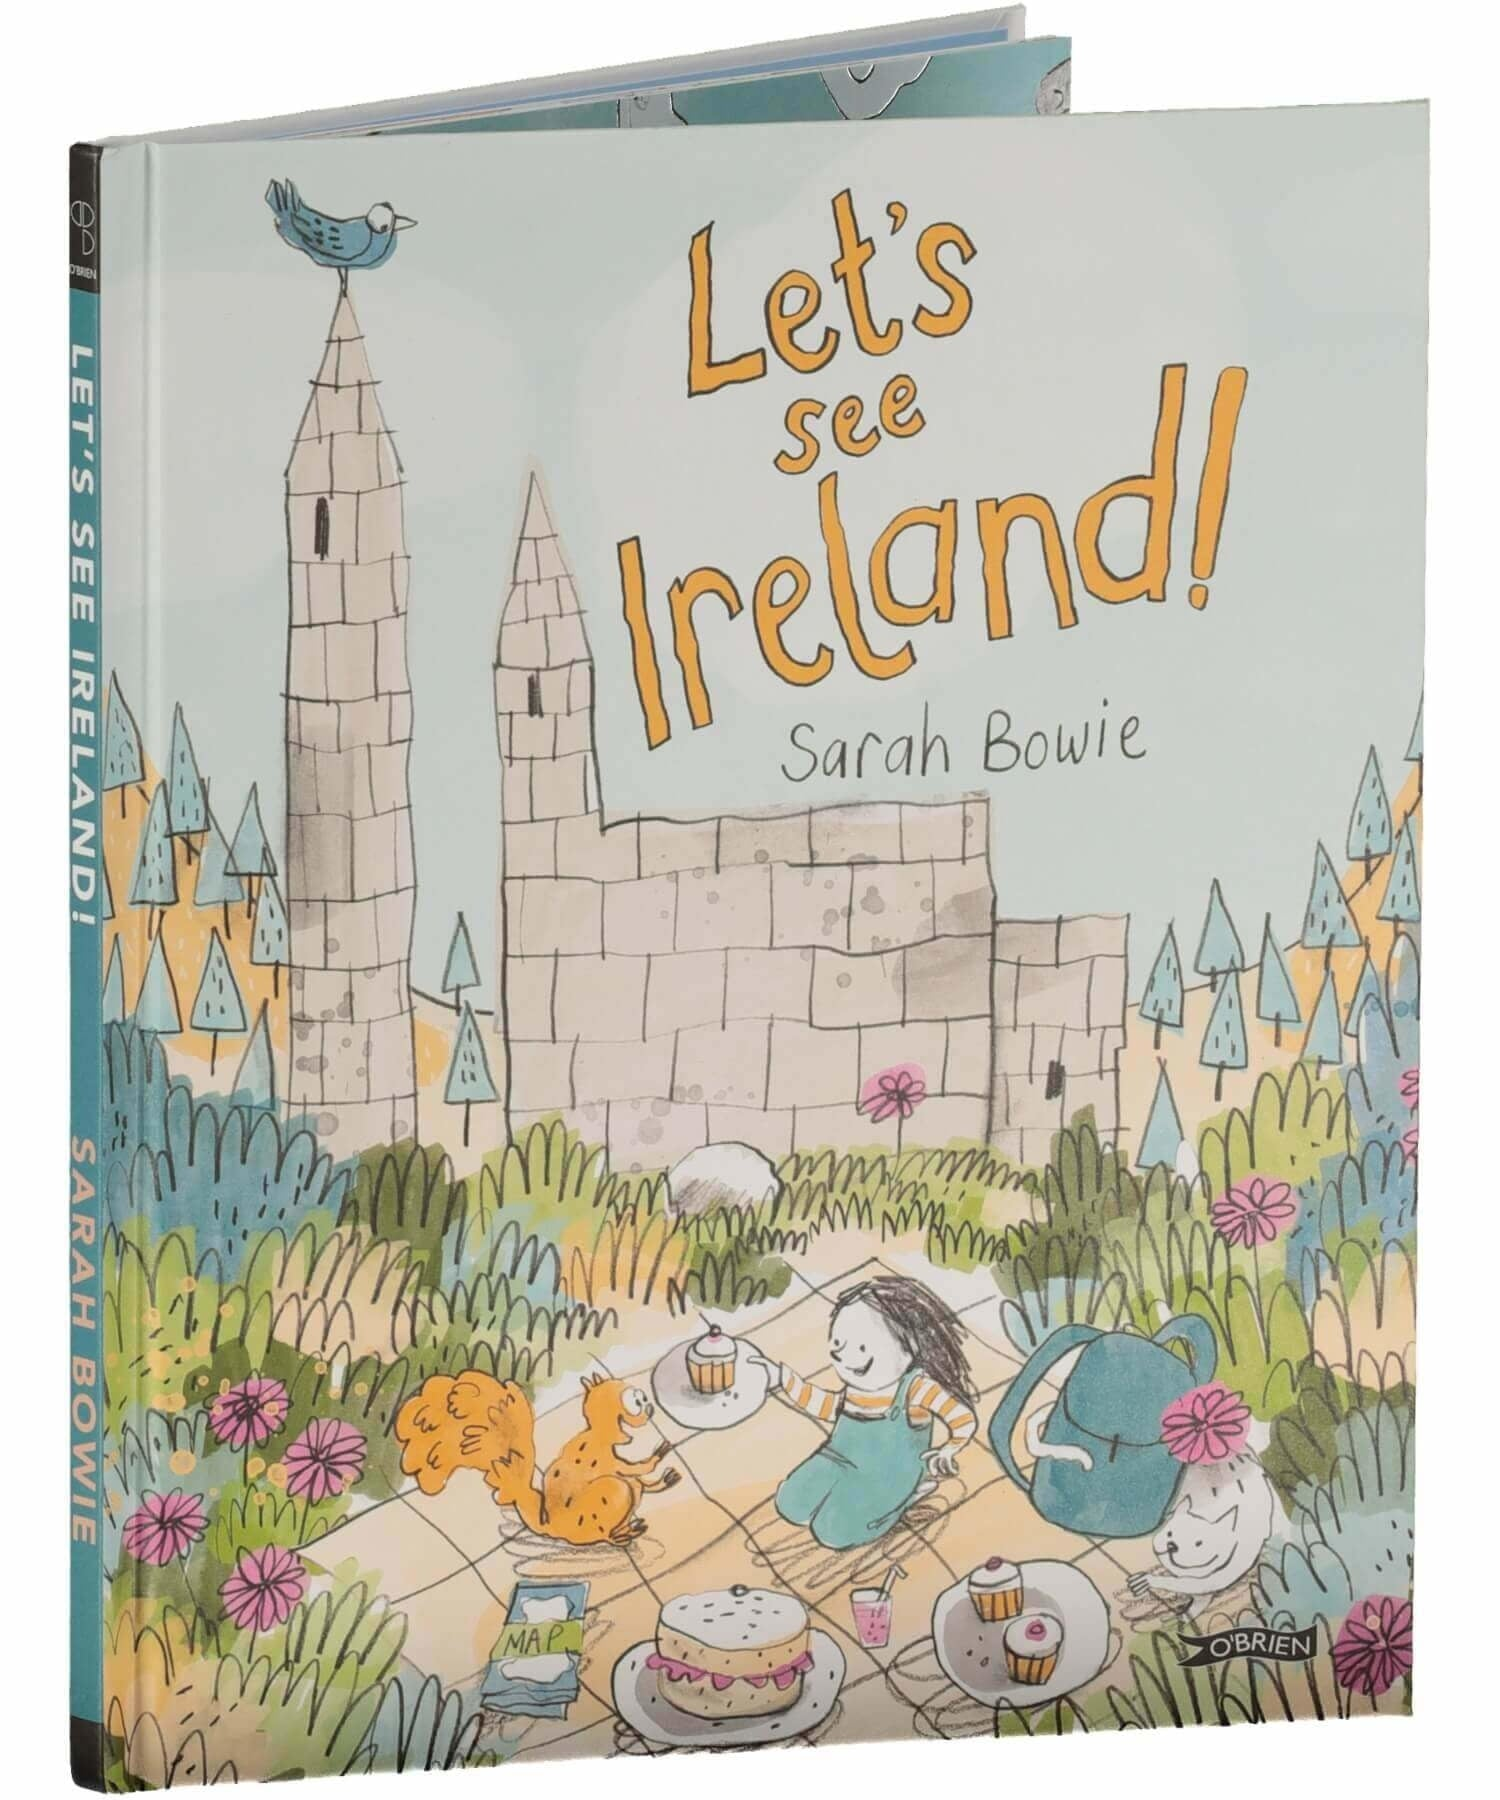 Let's see Ireland - [The O'Brien Press] - Books & Stationery - Irish Gifts